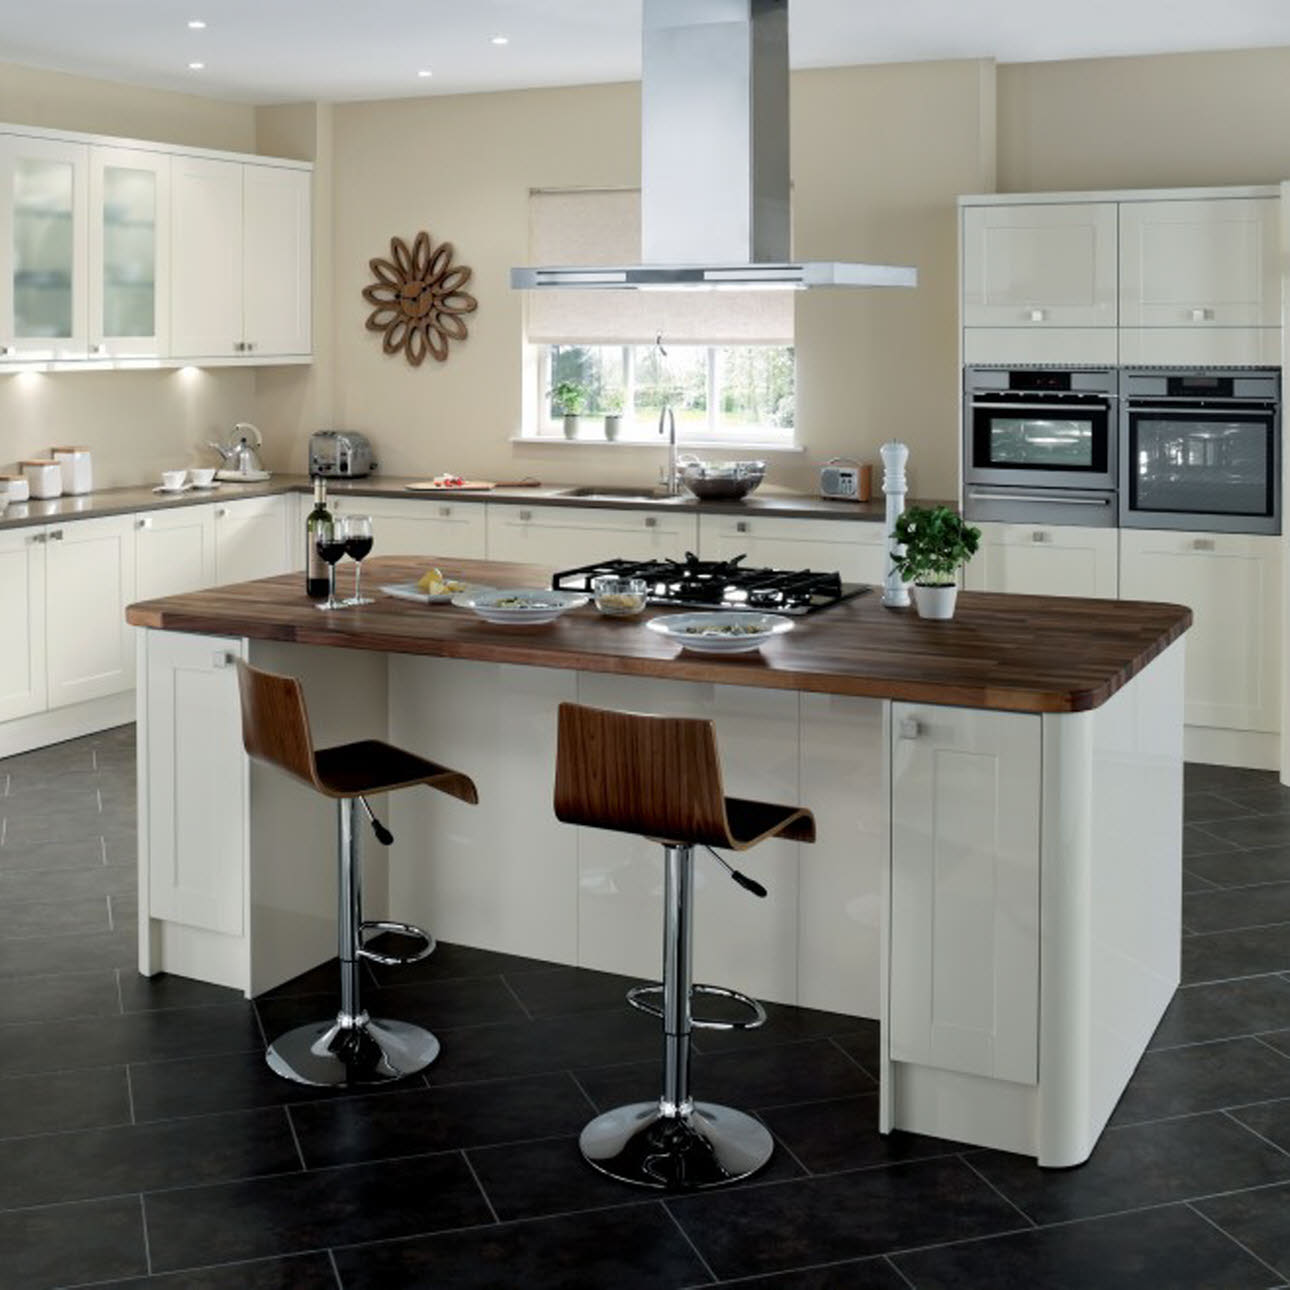 Leighton Gloss Cream shaker kitchen